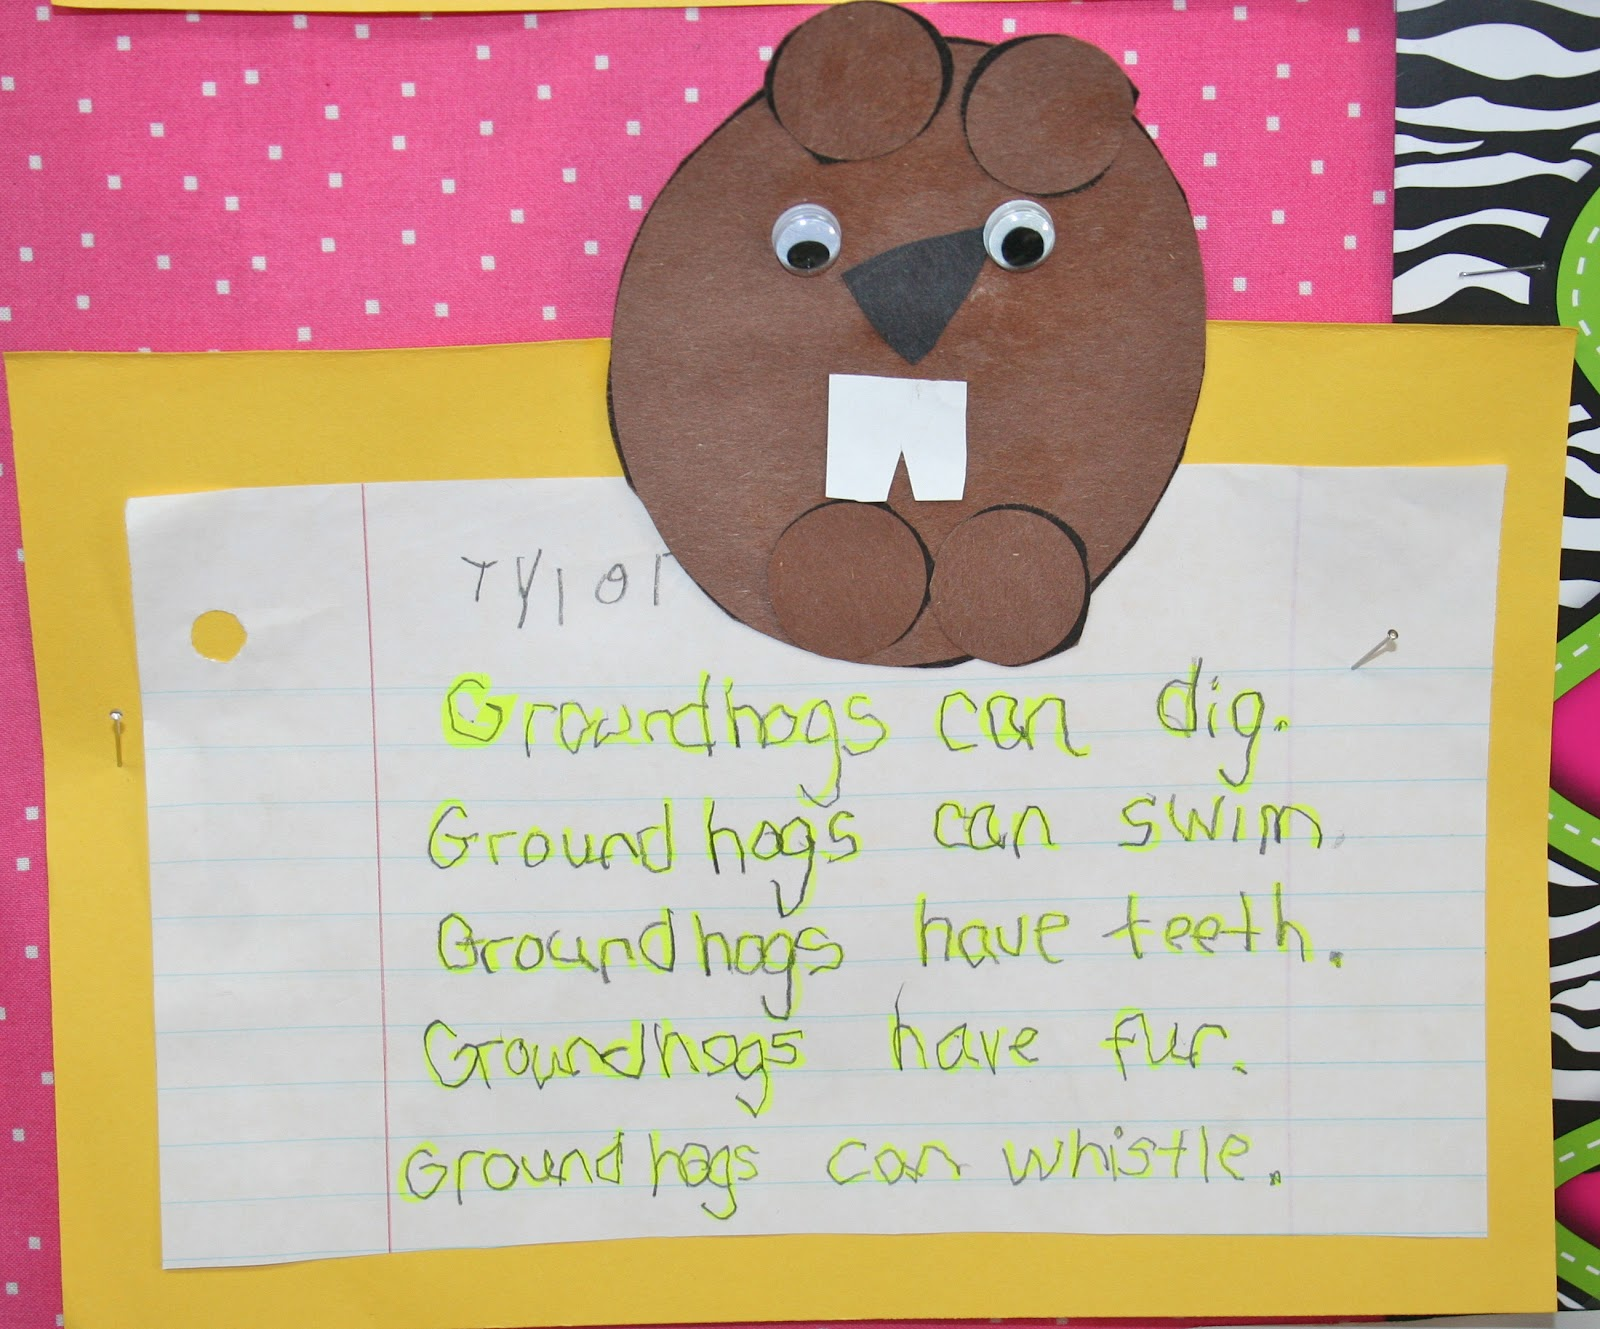 Mrs Lisa S Pre K Crew Rocks Groundhog Day Oh What Fun